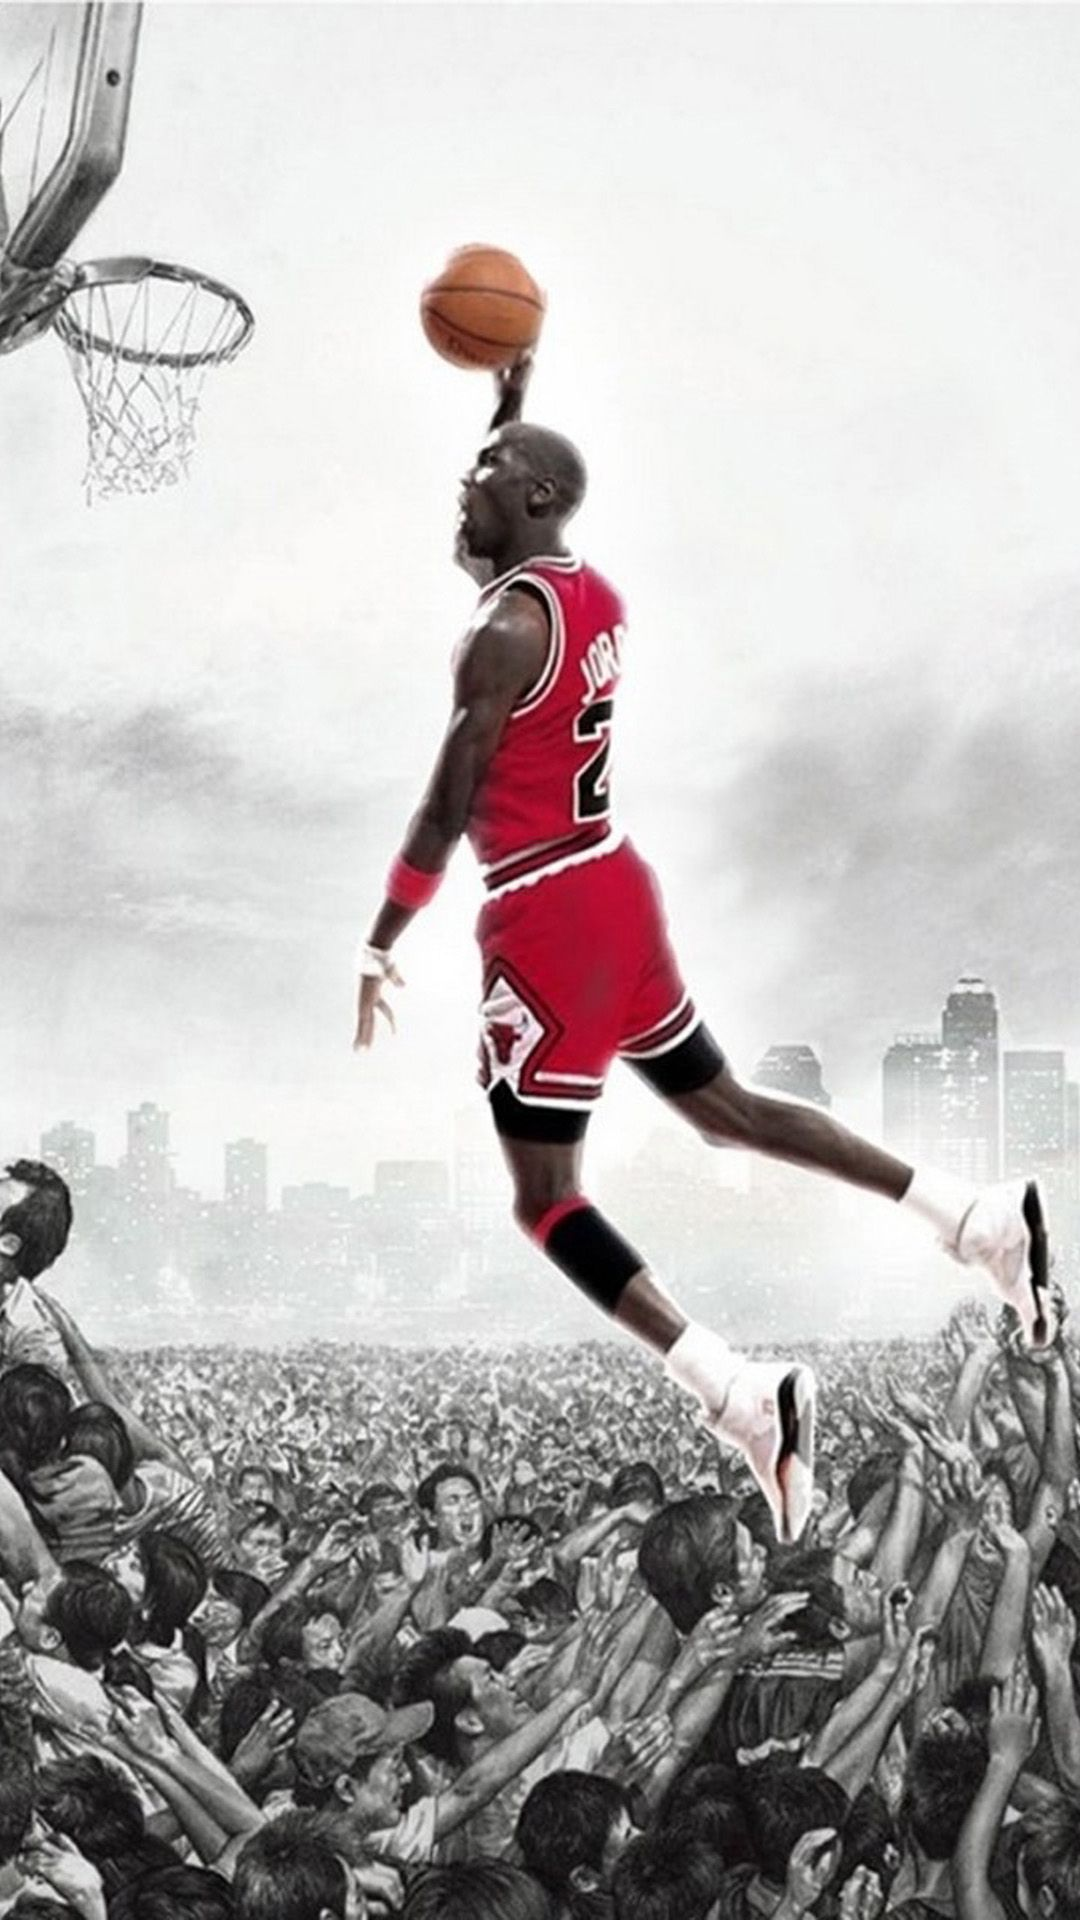 Awesome Sports Wallpapers On Wallpaperdog